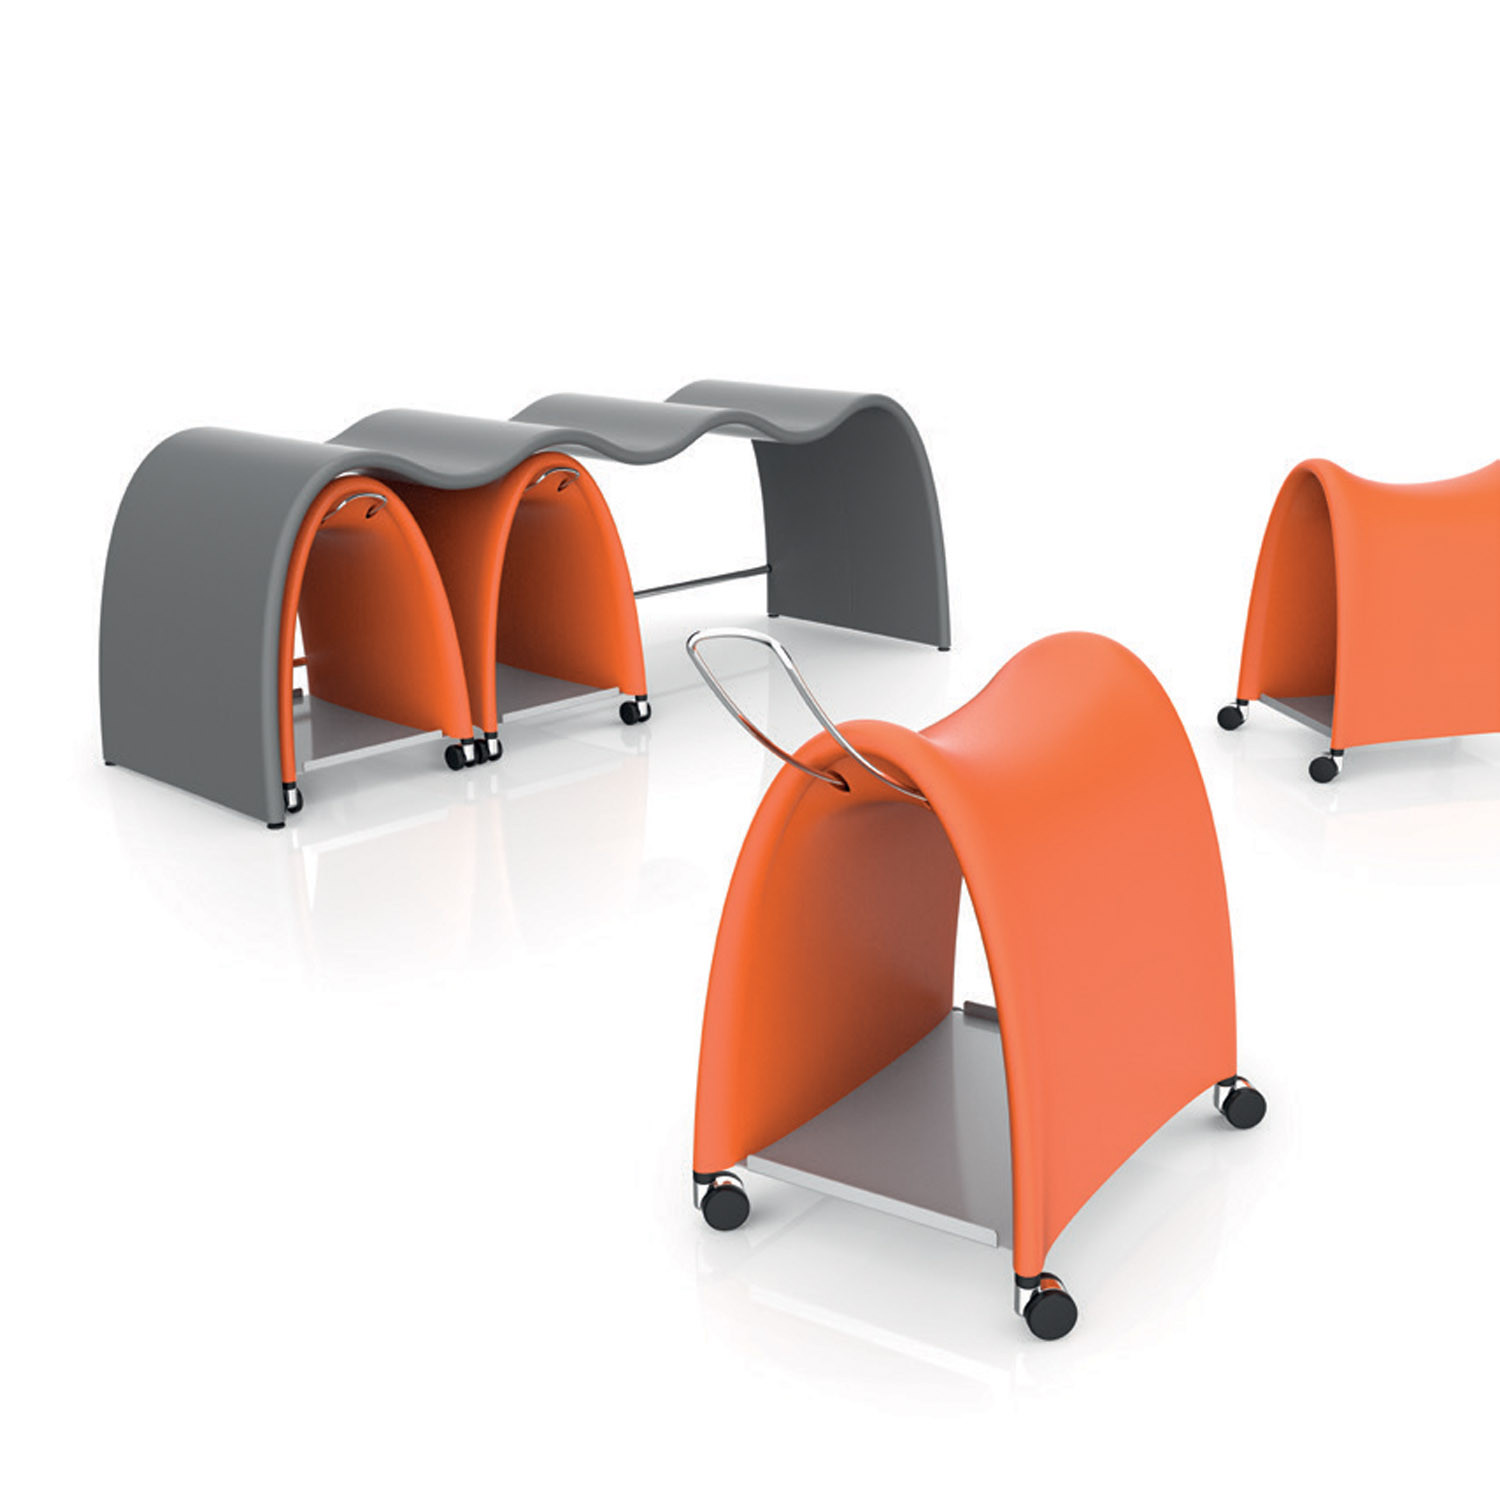 Torro Saddle Stool and Bench Station